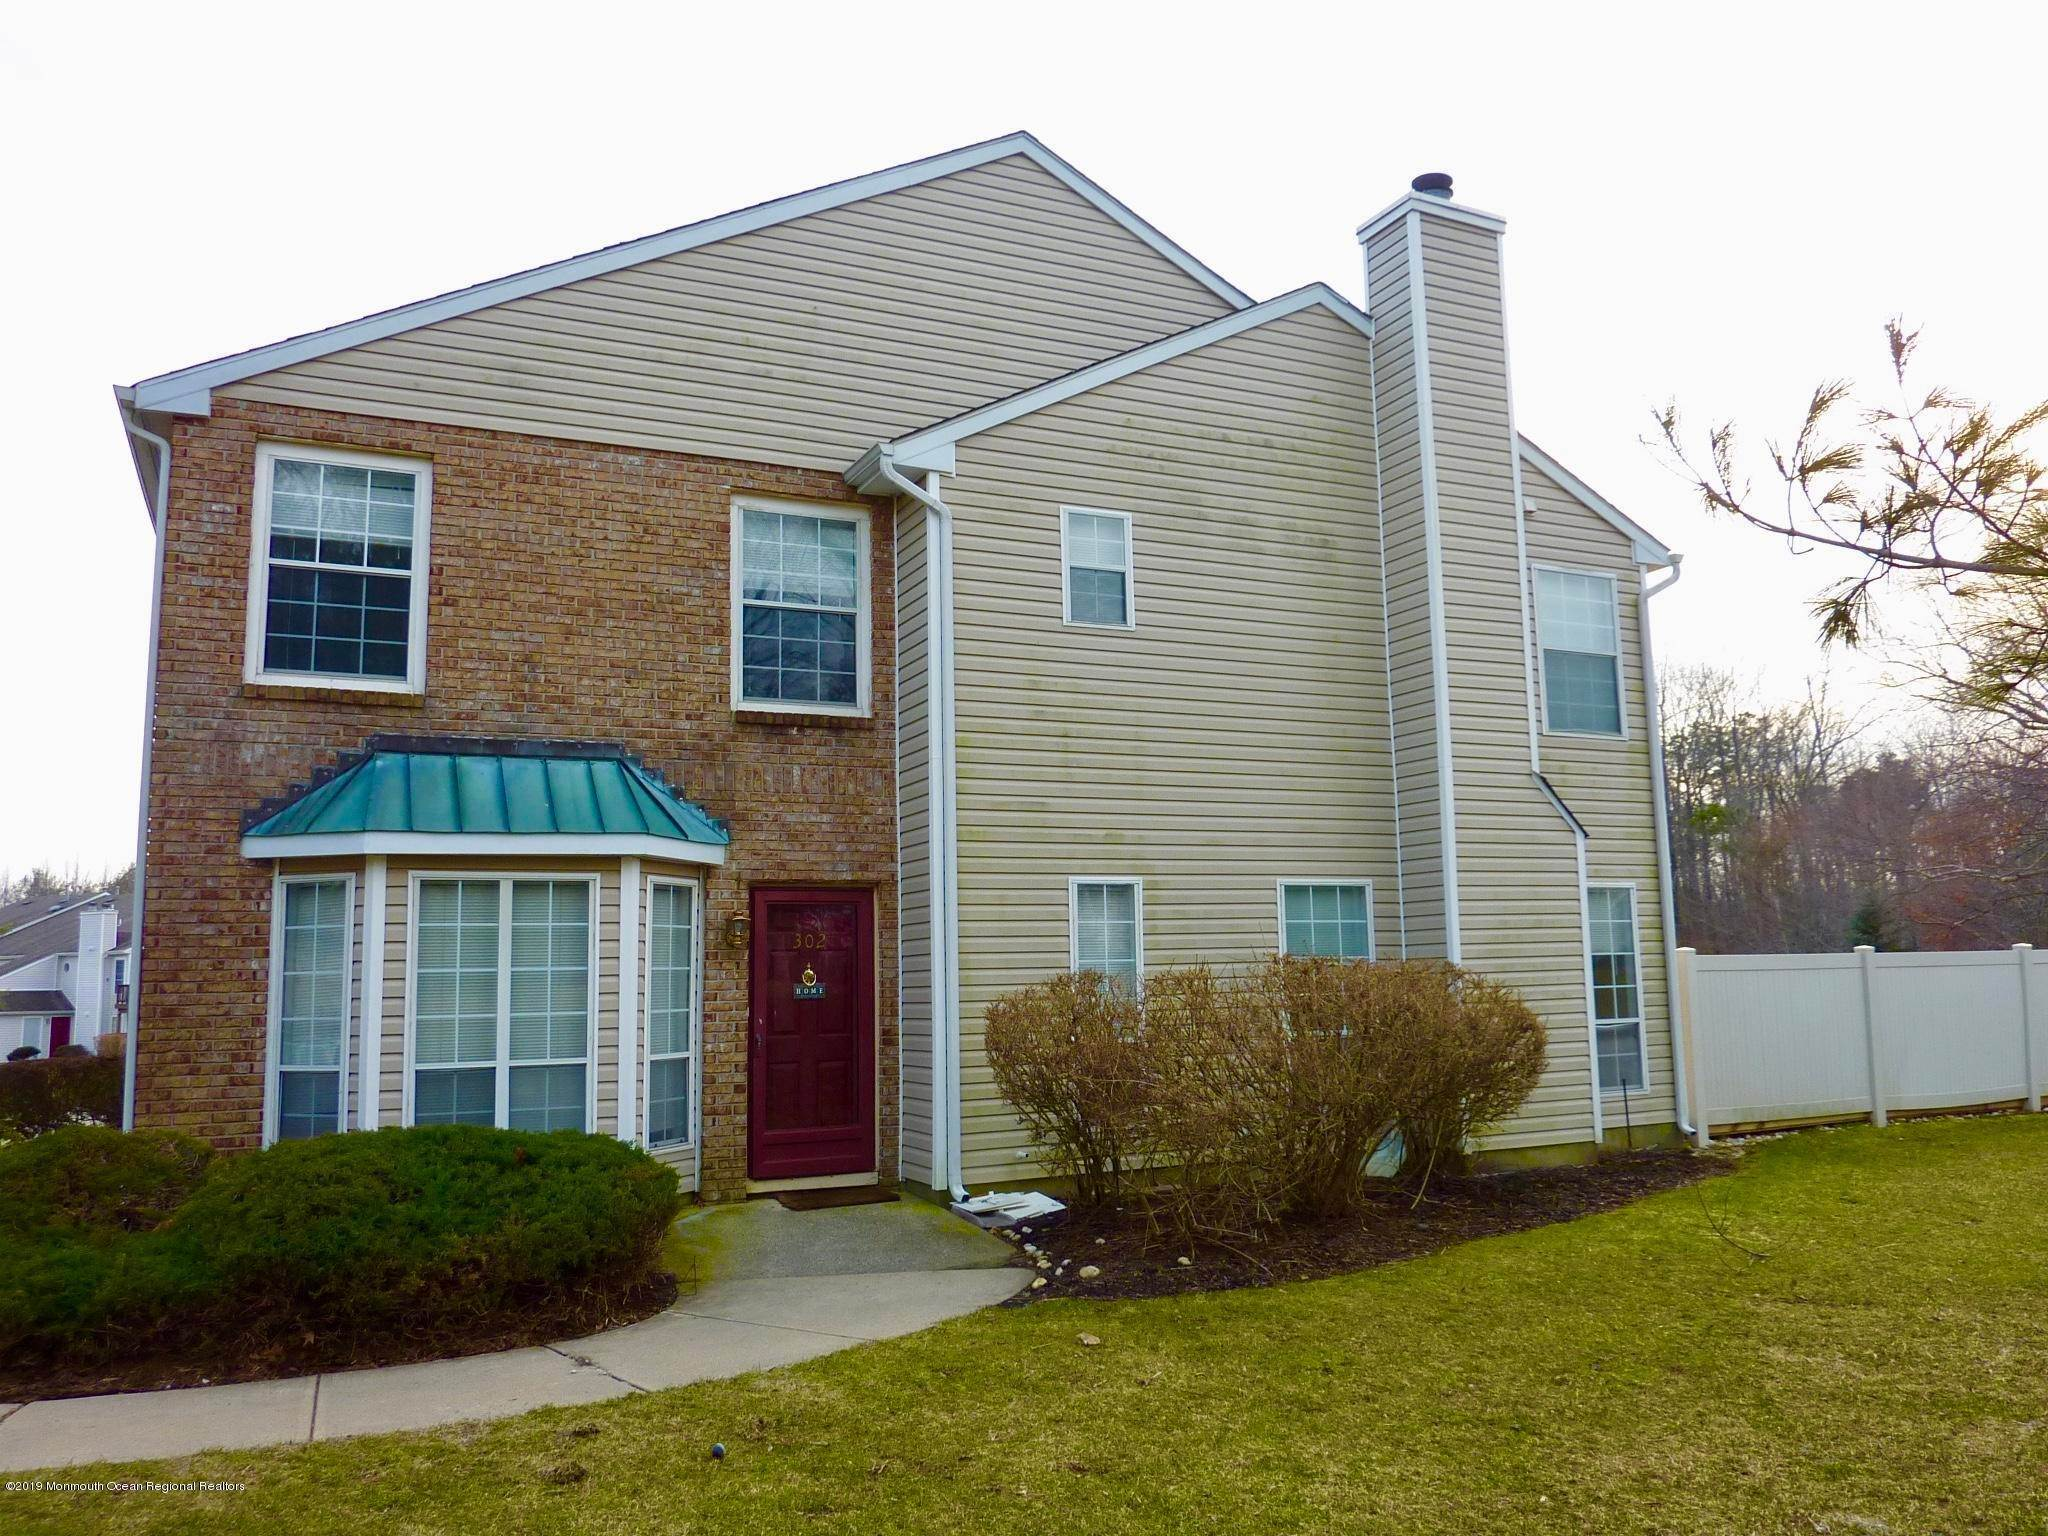 Condominiums at 302 Harvard Place Morganville, New Jersey 07751 United States